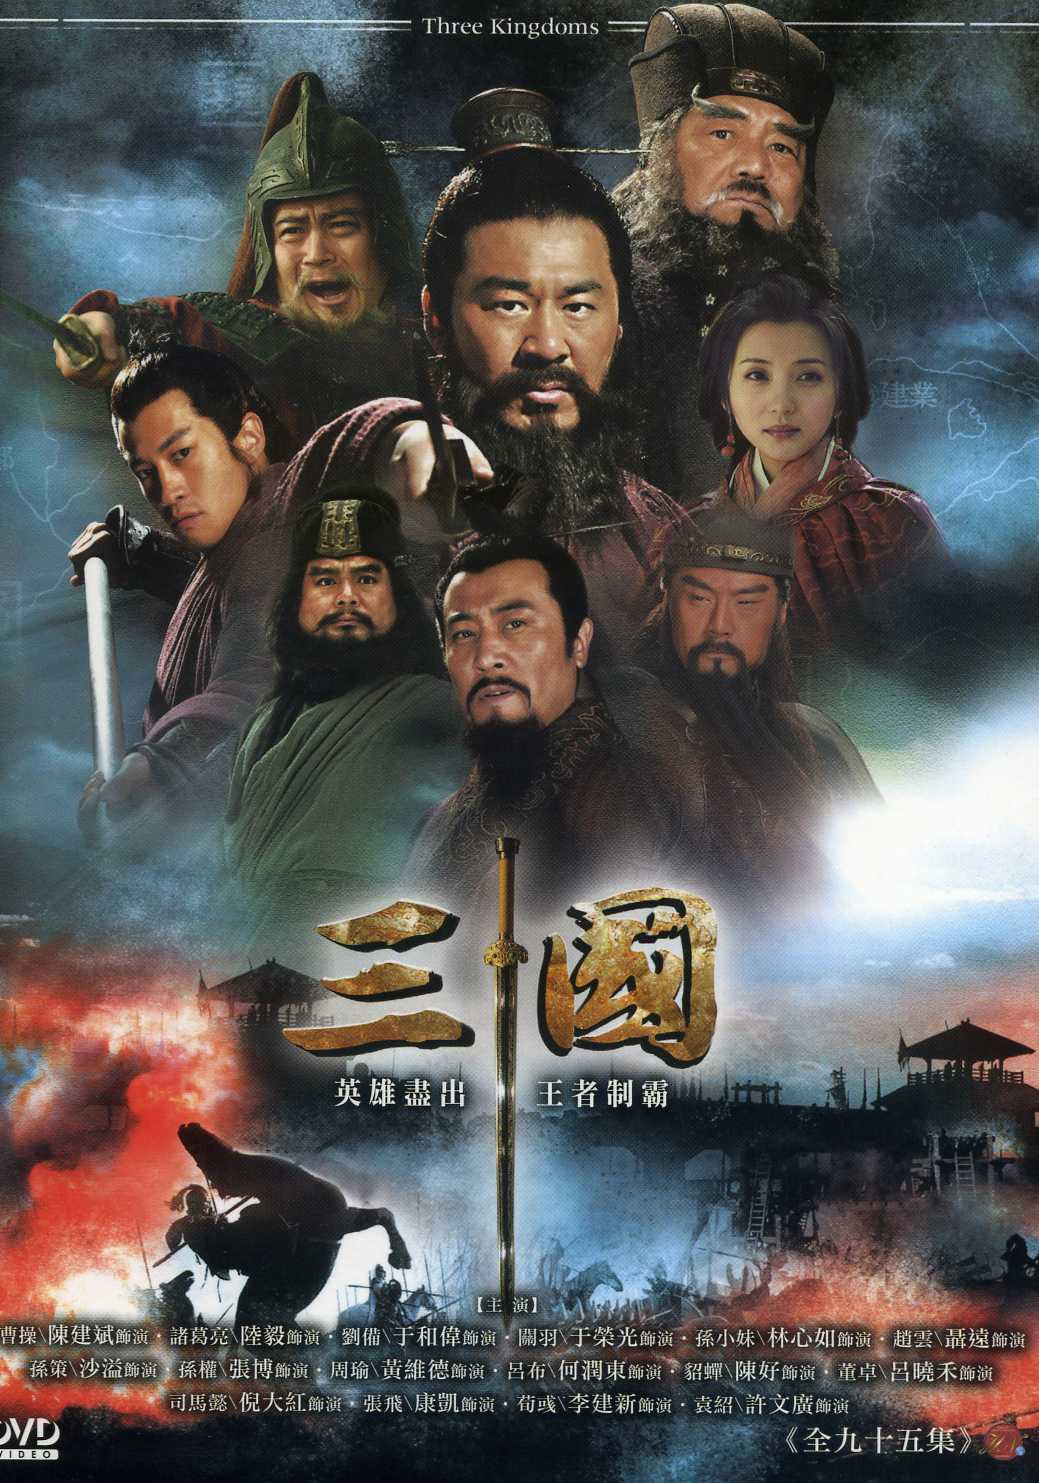 三國 Three kingdoms